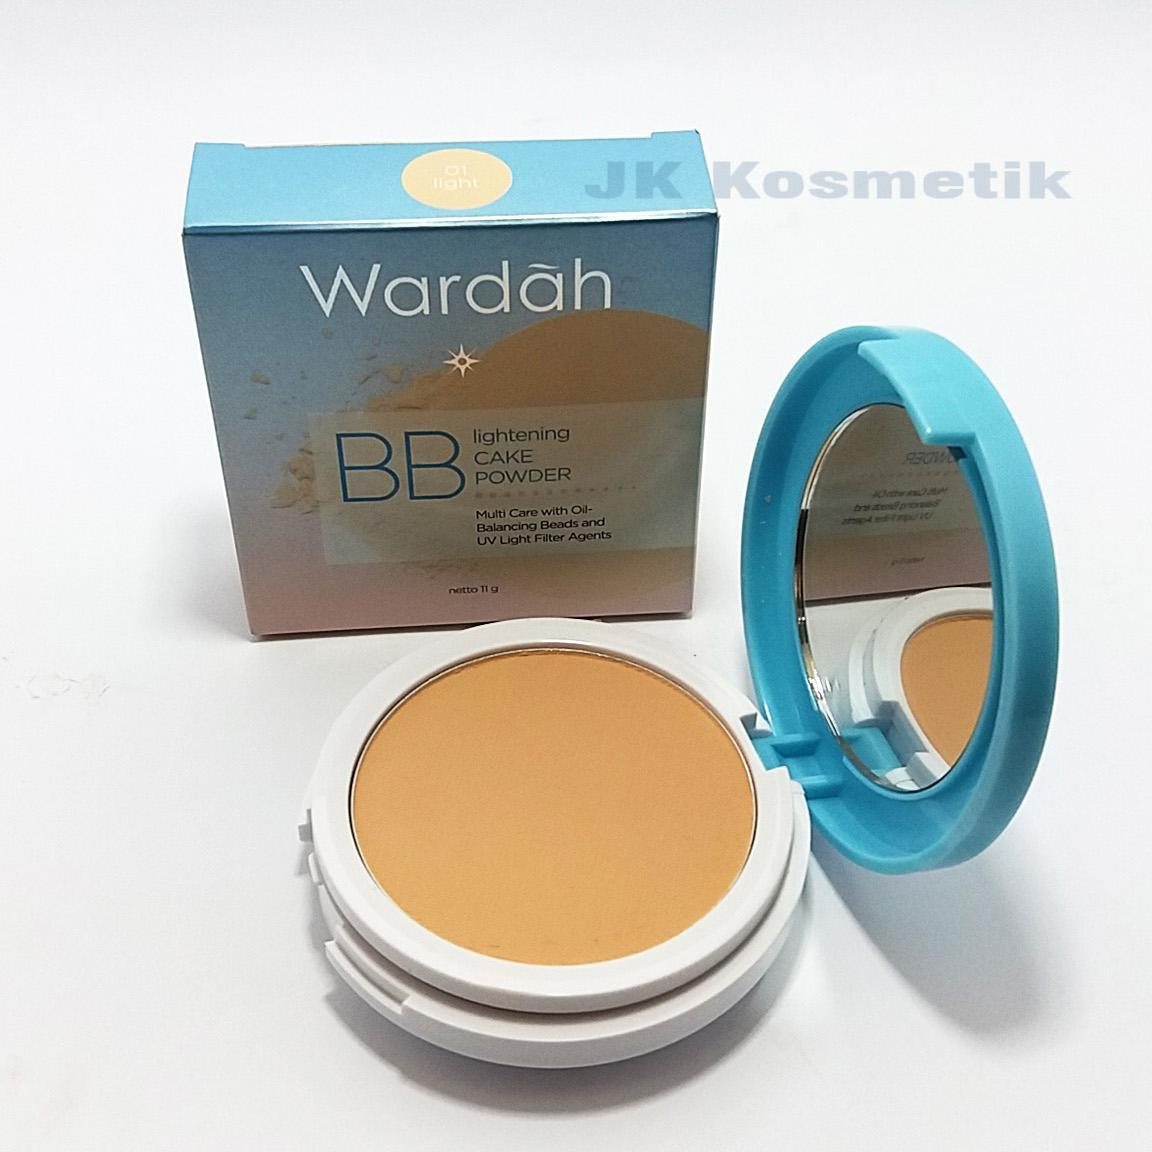 Cek Harga Baru Wardah Lightening Bb Cake Powder 01 Light Terkini Twc Exclusive Bedak Padat Recommended